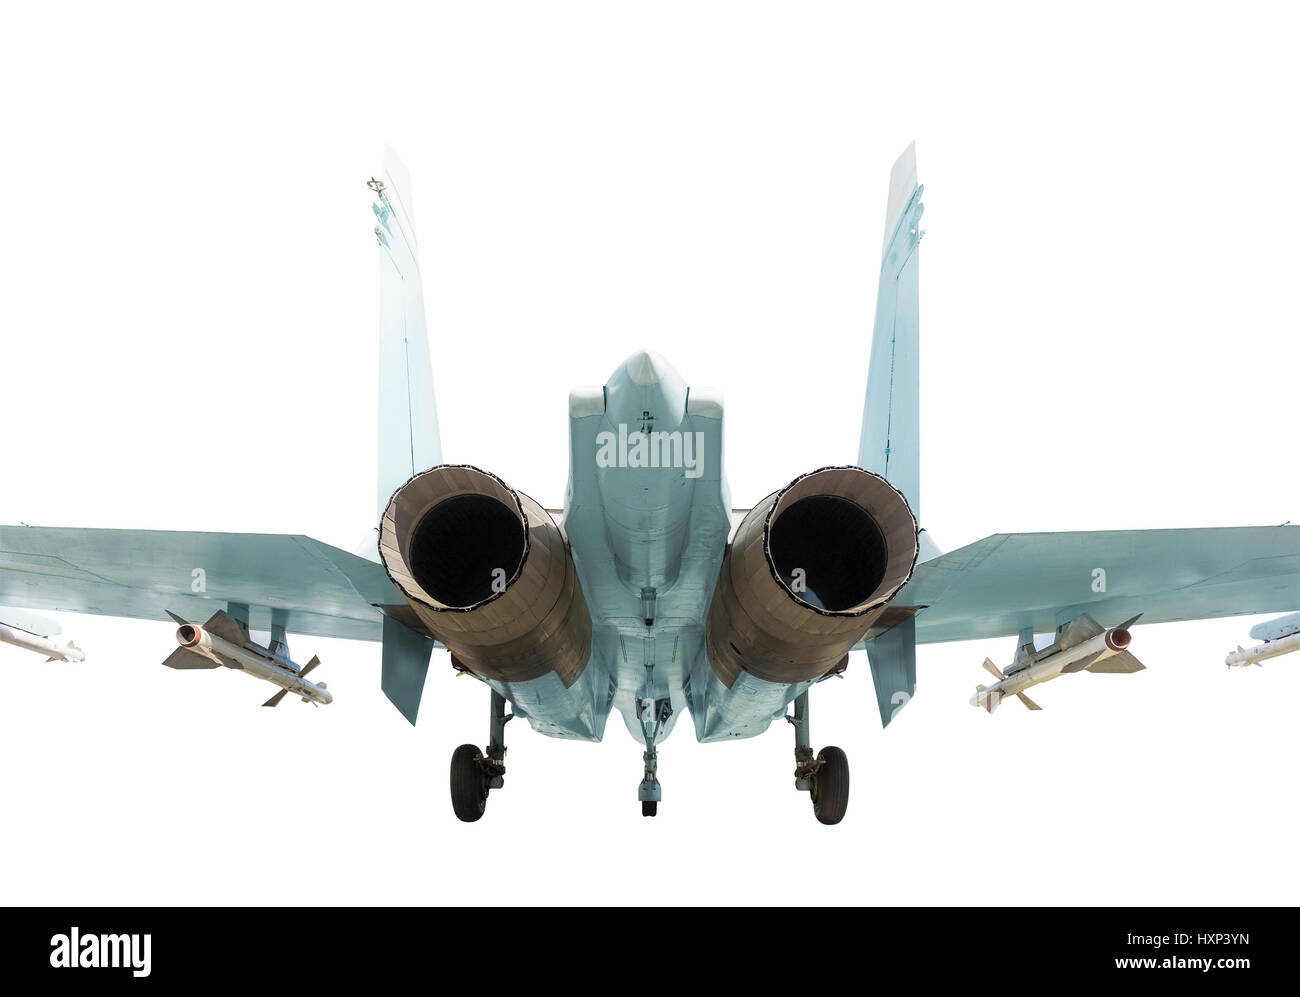 Back view of the supermaneuverable fighter aircraft on the white background - Stock Image